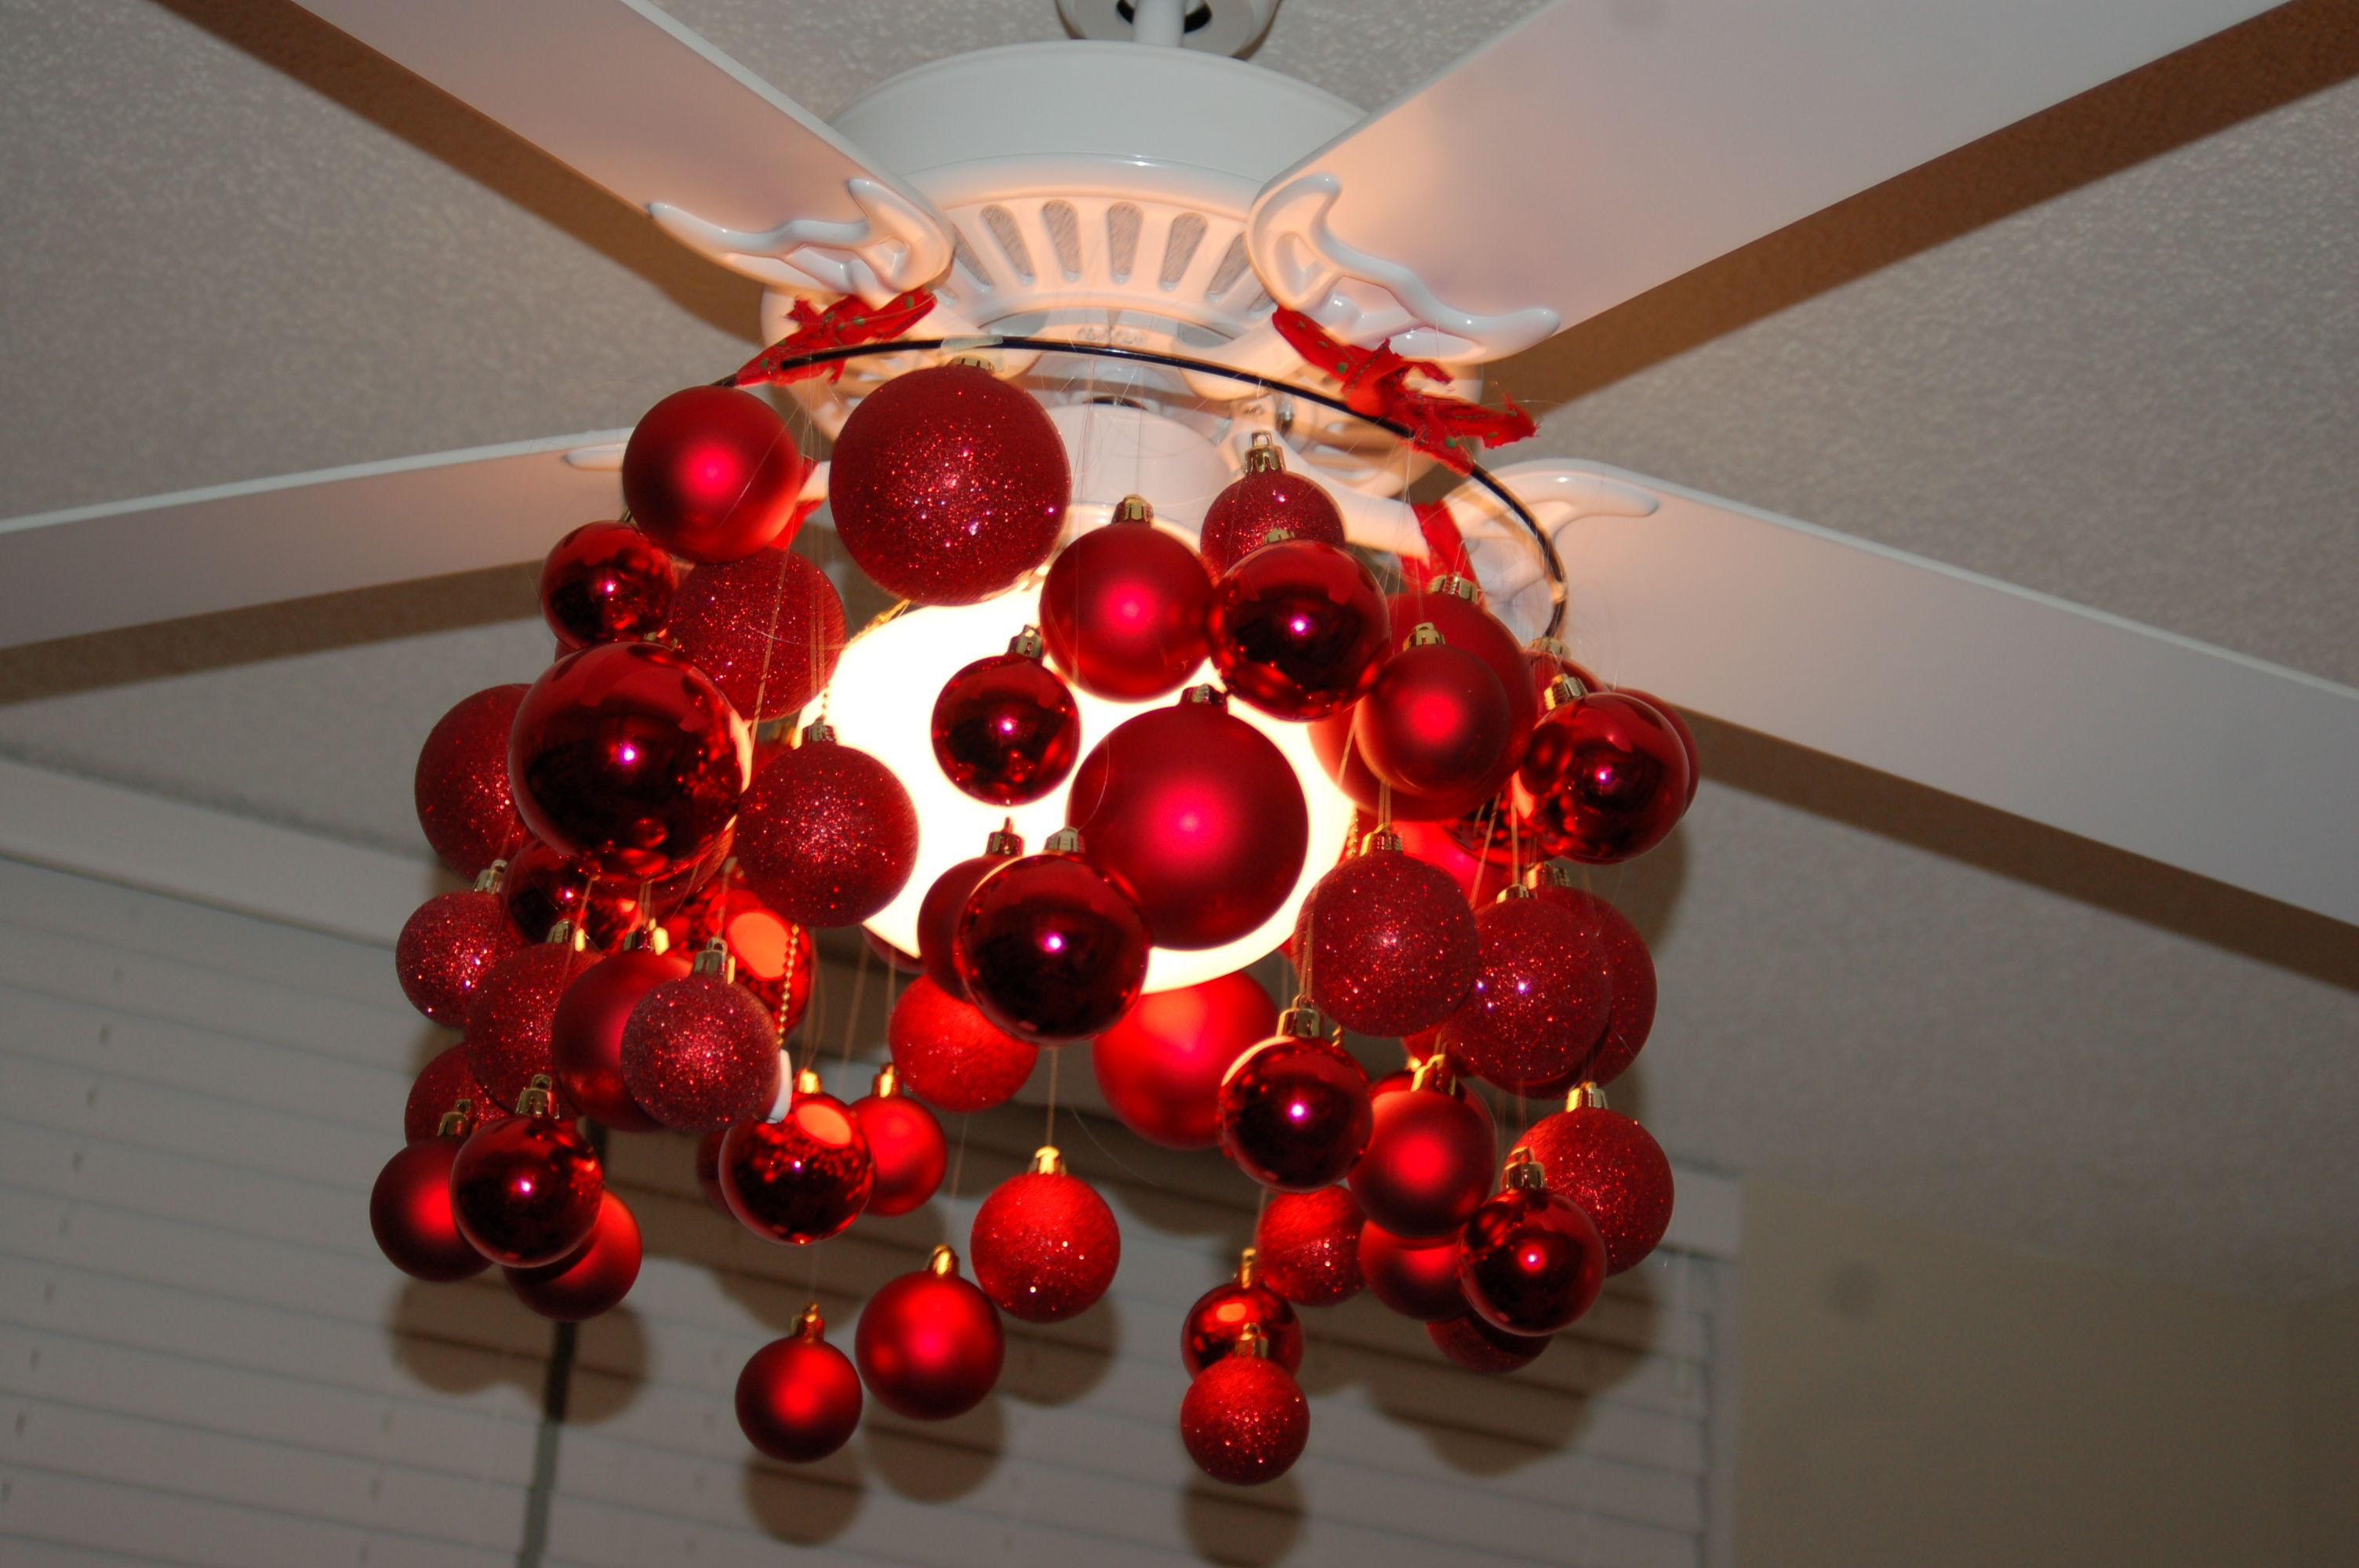 Ceiling Fan Chandelier Fail Diy Christmas Decorations For Home Diy Chandelier Ceiling Fan